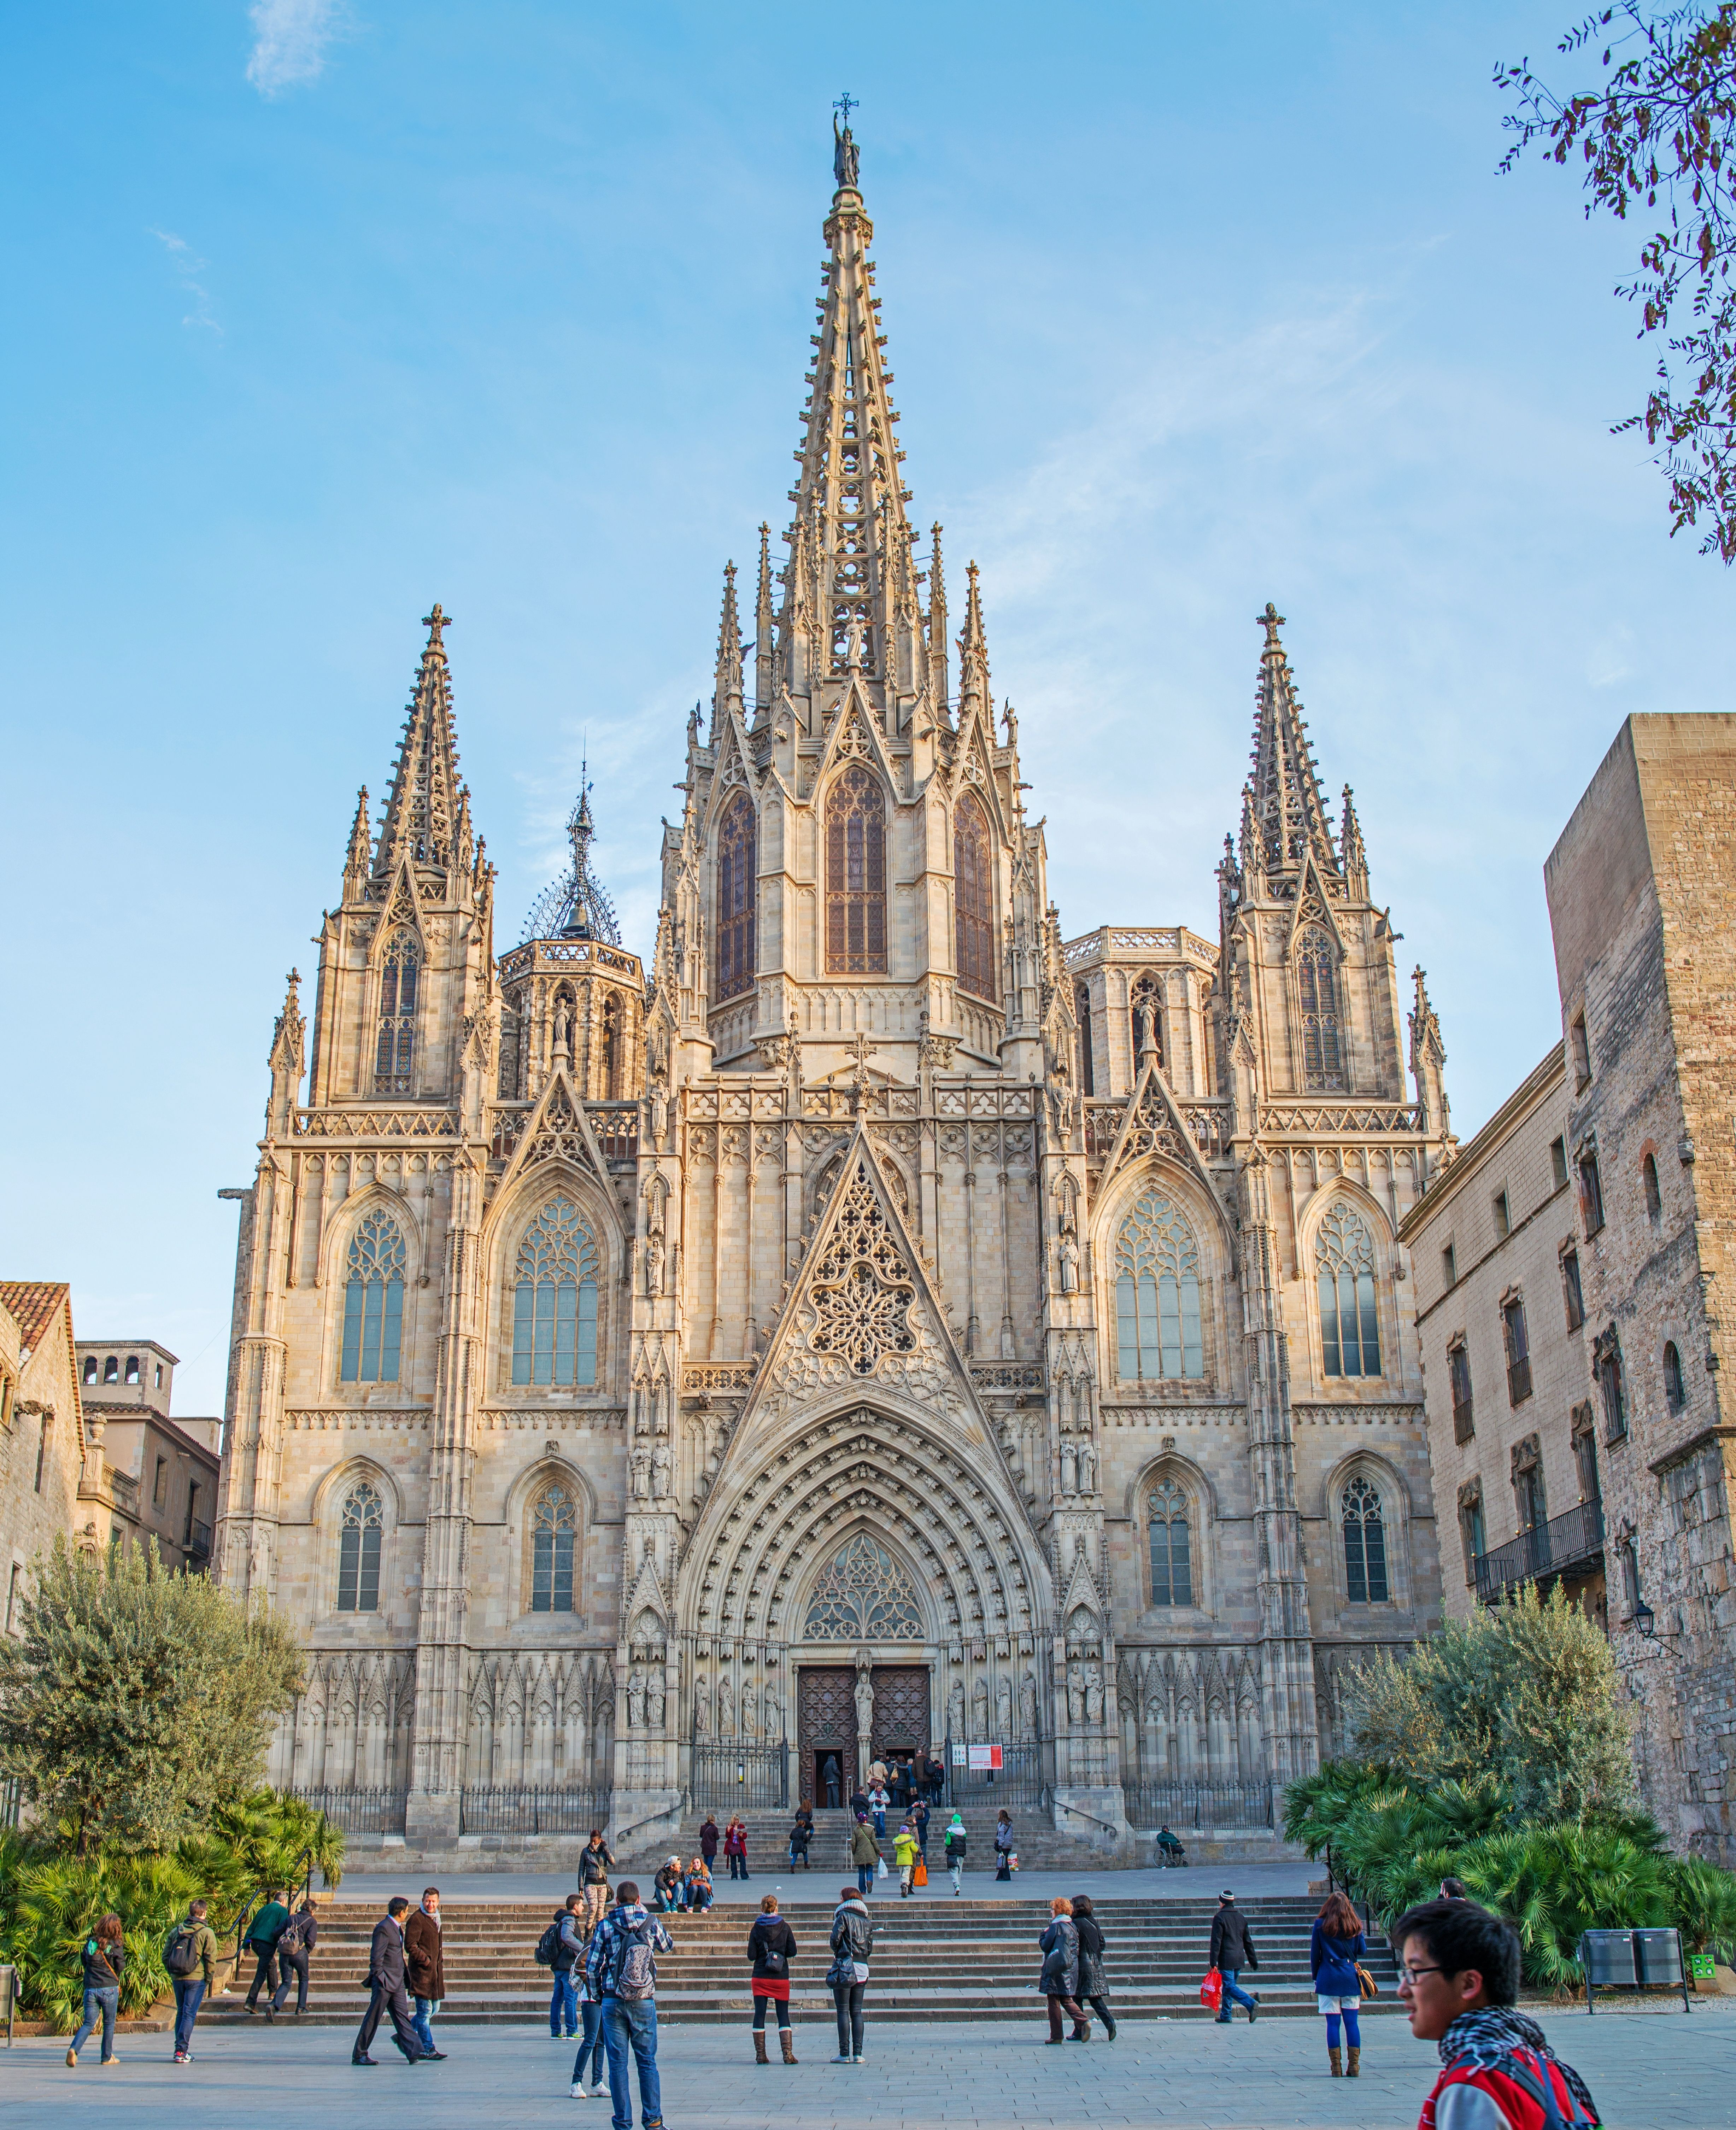 #Barcelona #cathedral #barcelonacathedral